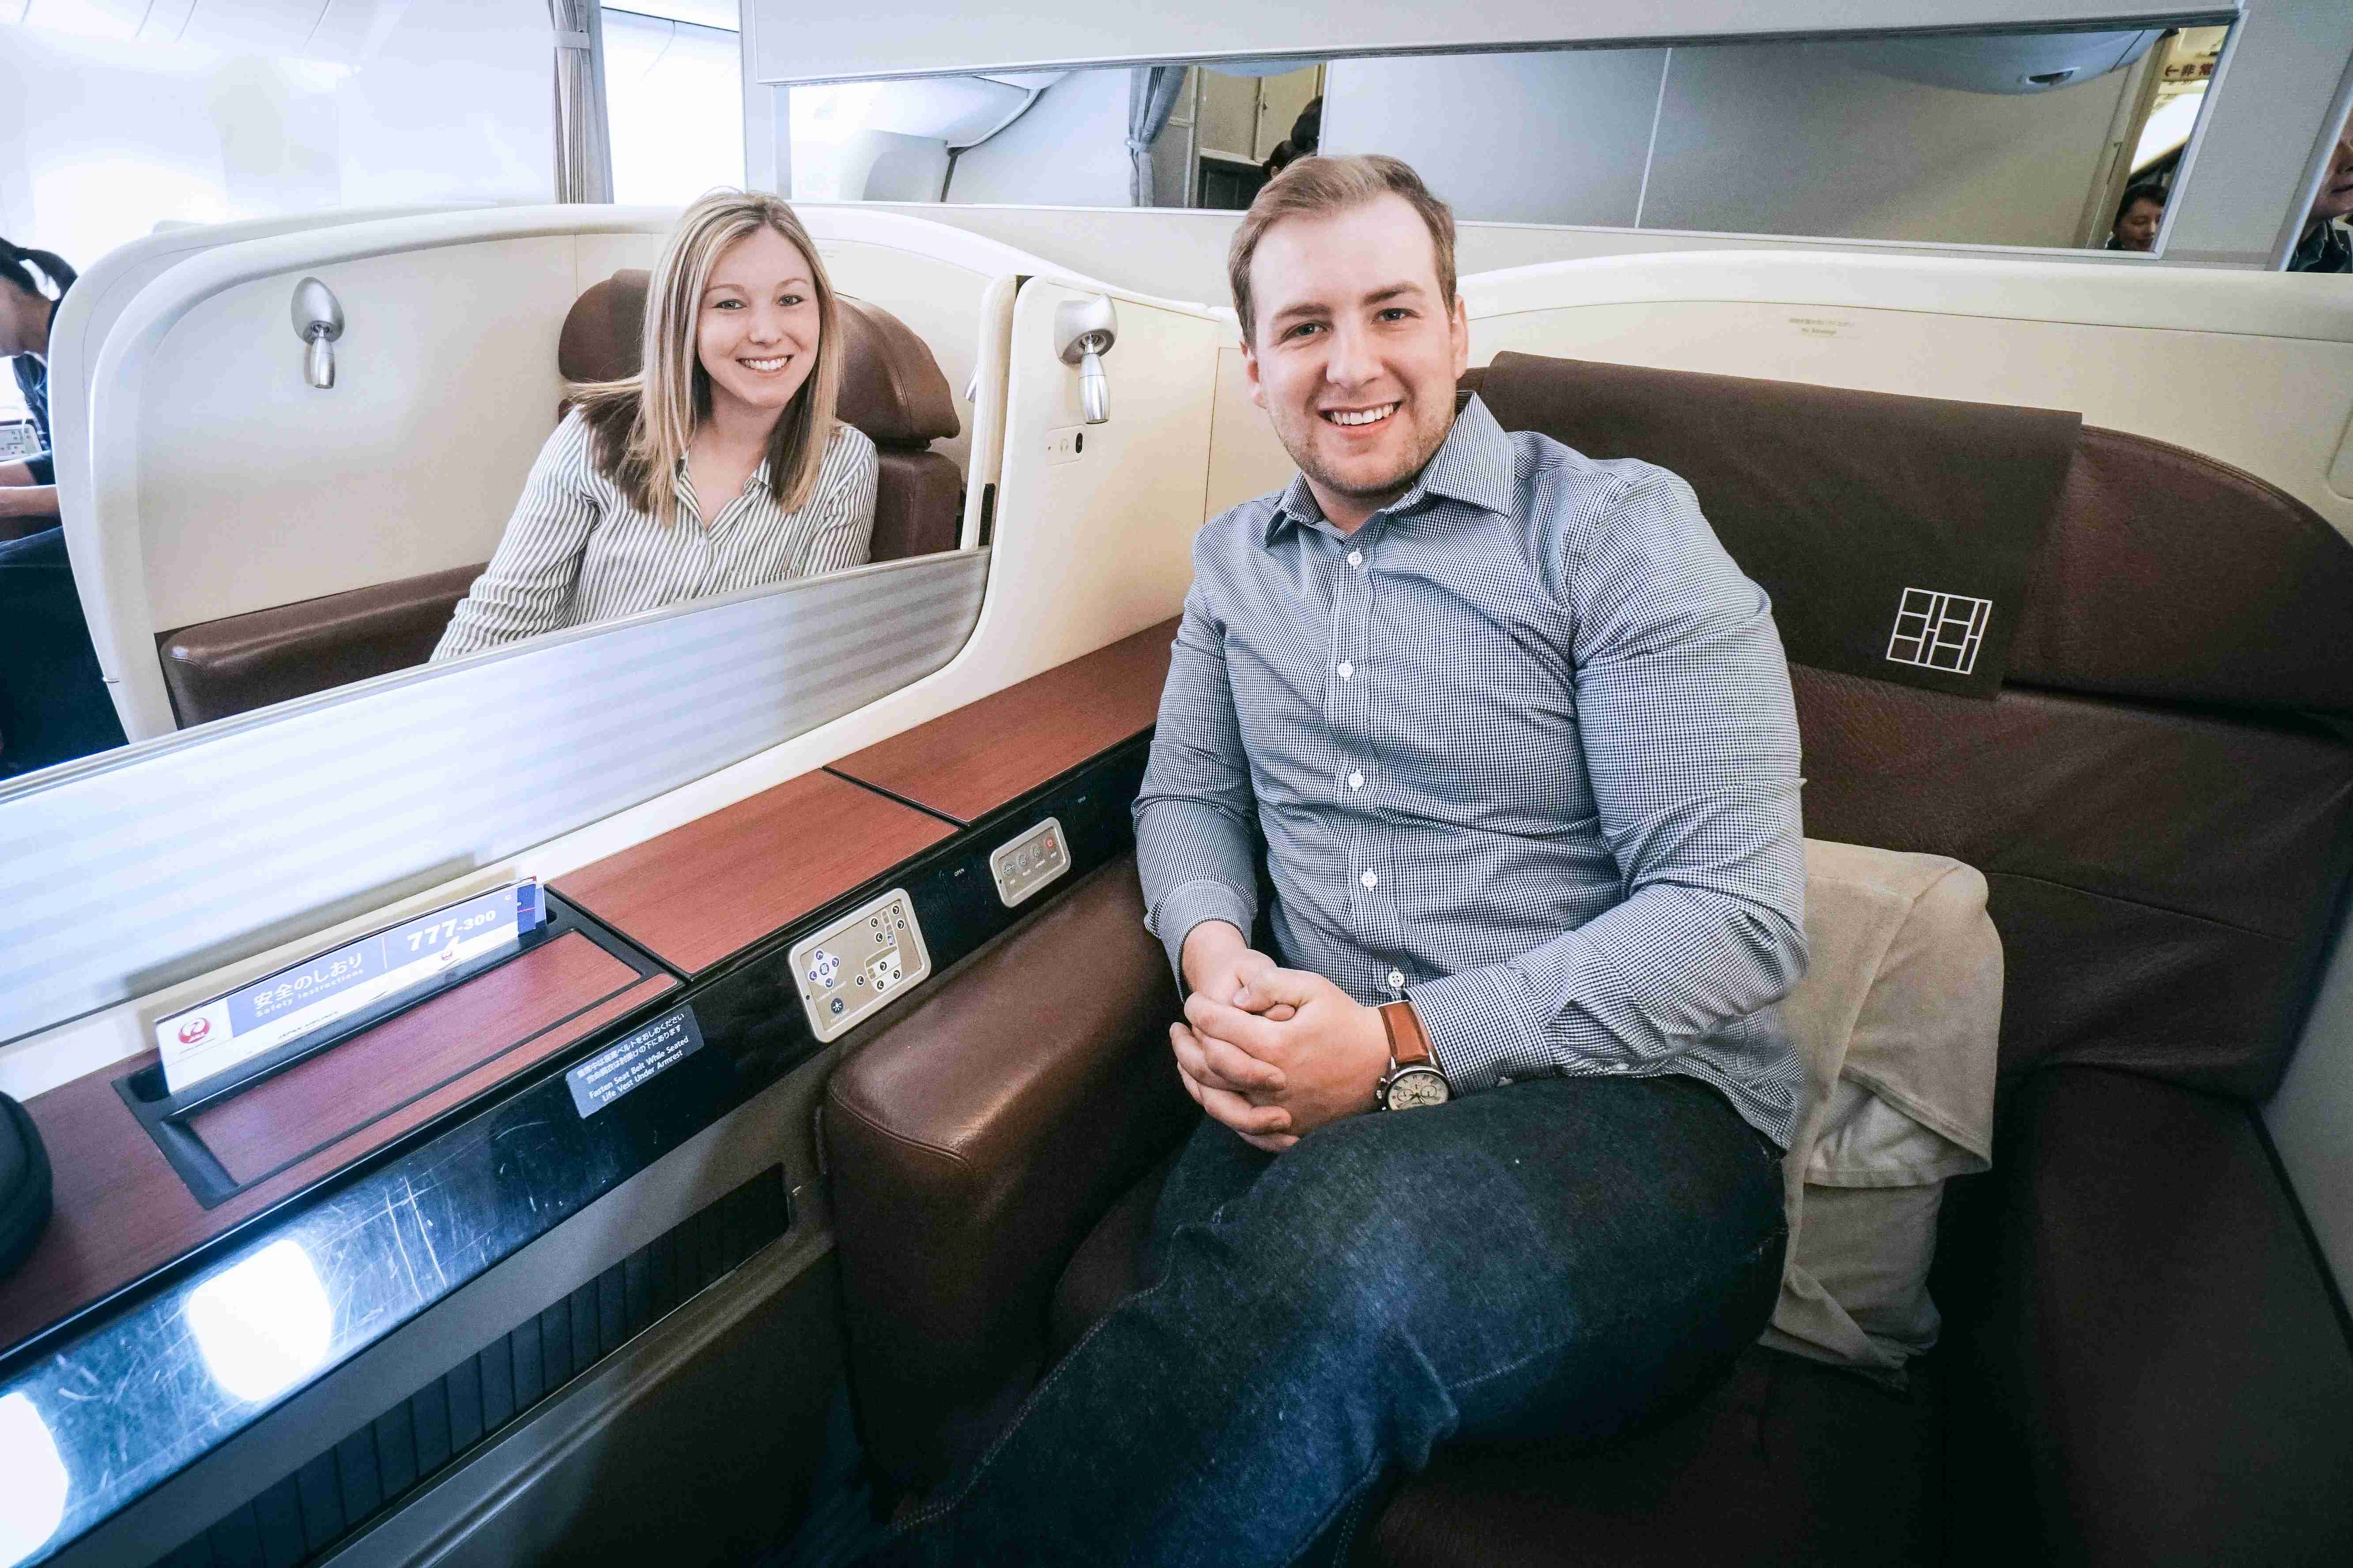 Japan Airlines first class. Photo courtesy of Kyle Parks.